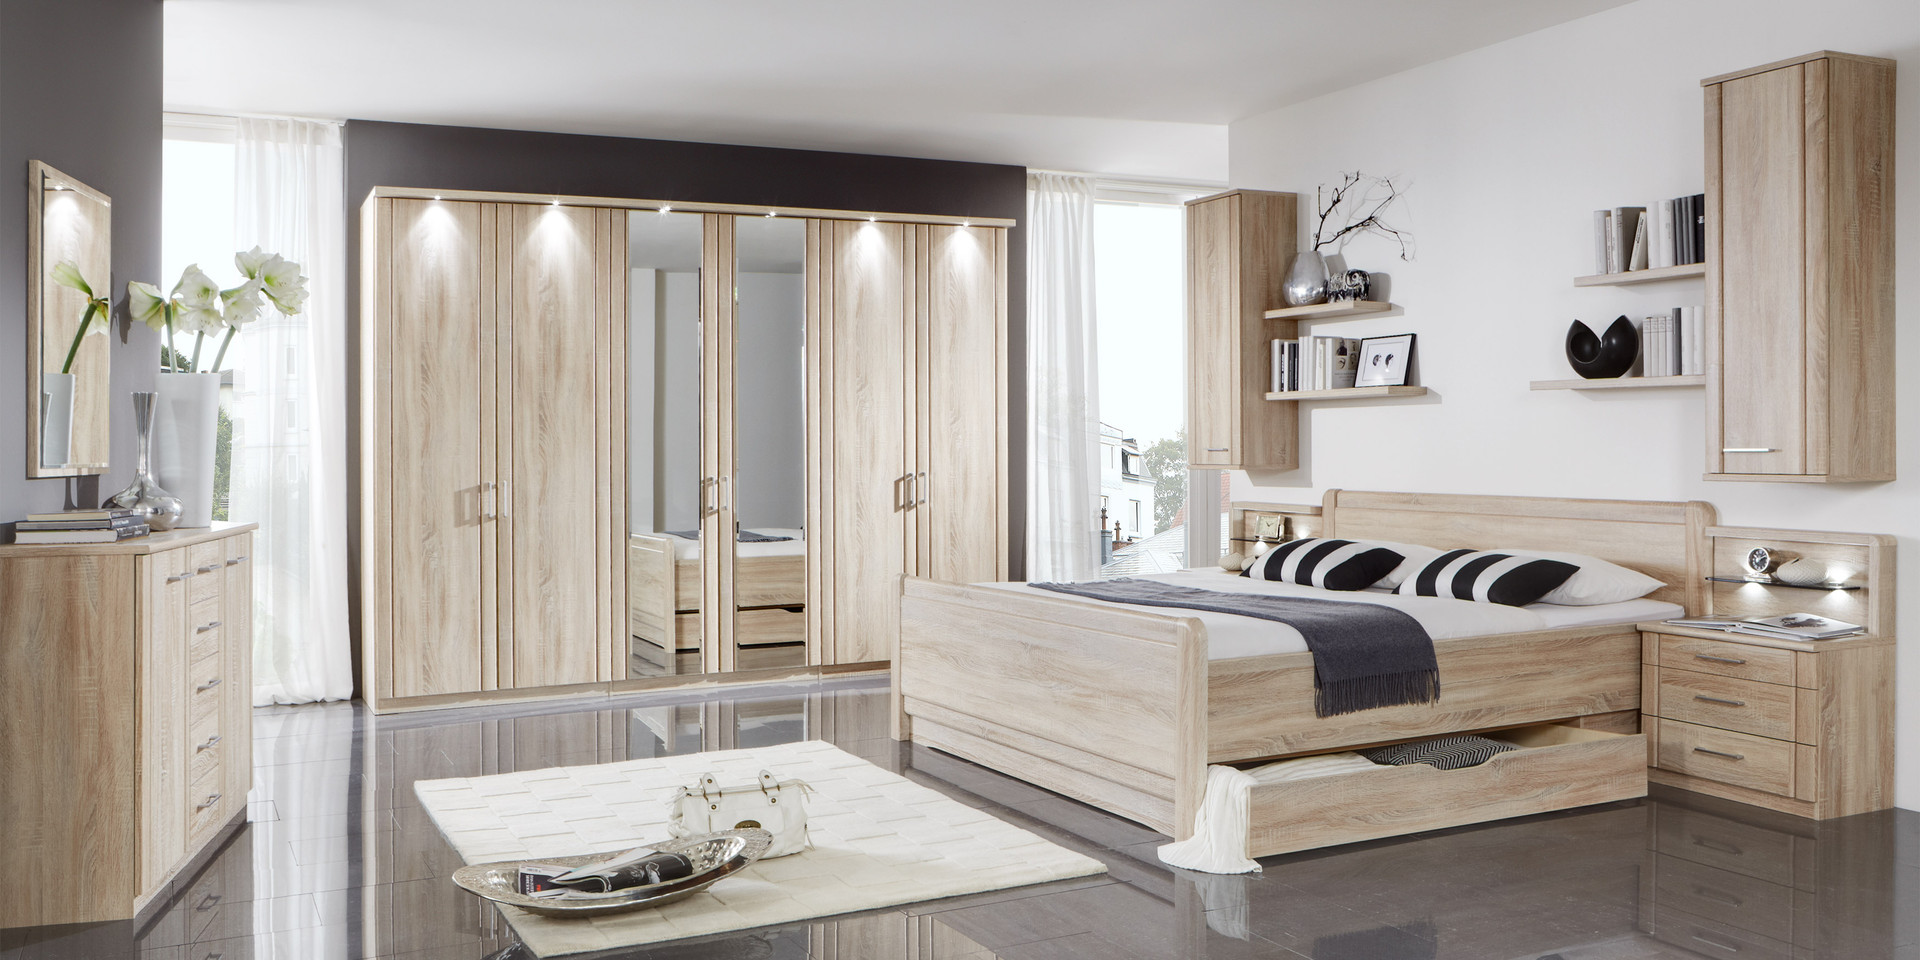 erleben sie das schlafzimmer valencia m belhersteller wiemann. Black Bedroom Furniture Sets. Home Design Ideas